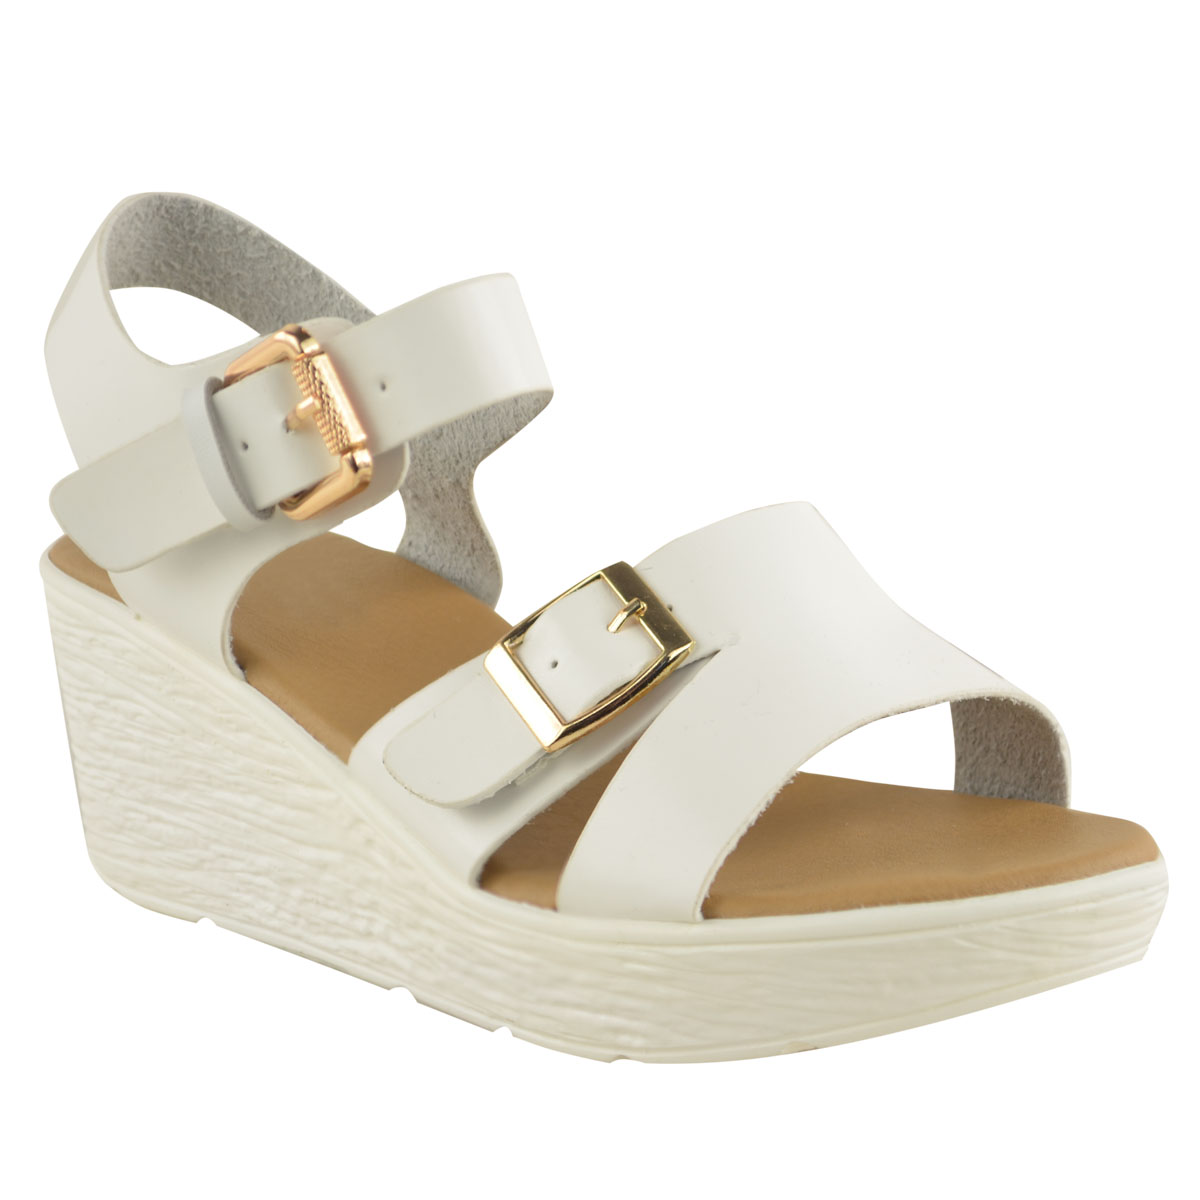 NEW WOMENS LADIES LOW WEDGE SANDALS STRAPPY SUMMER WIDE ...